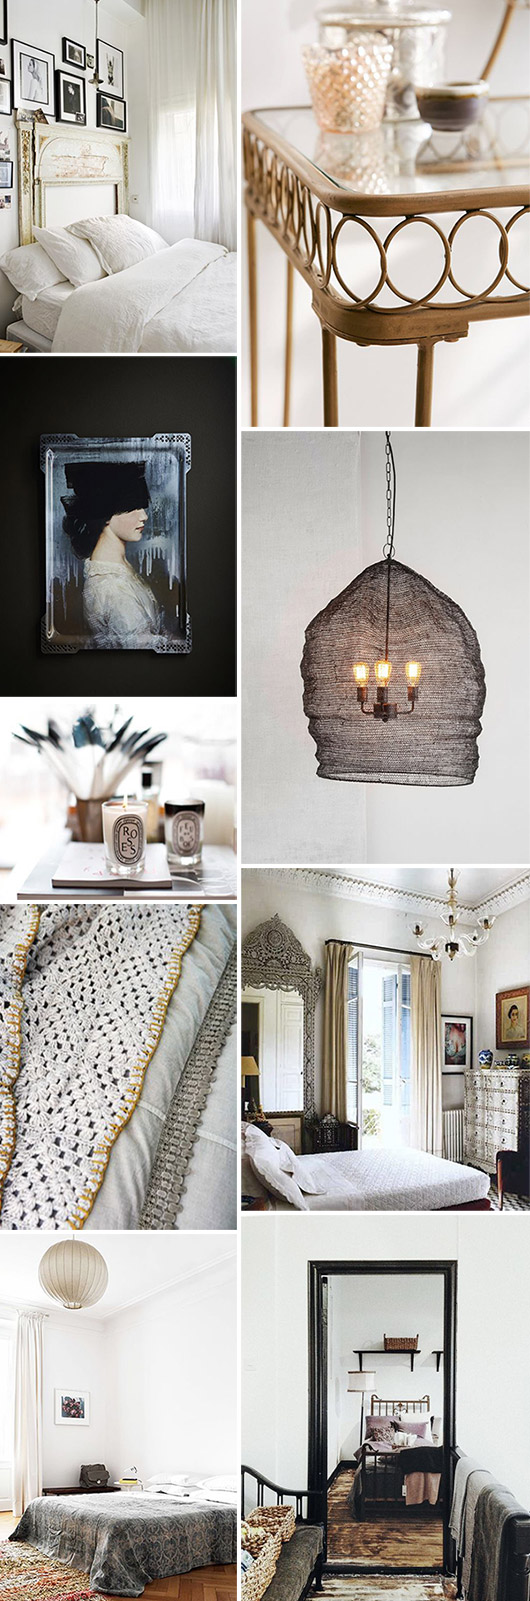 bohemian bedroom decor inspiration. / sfgirlbybay